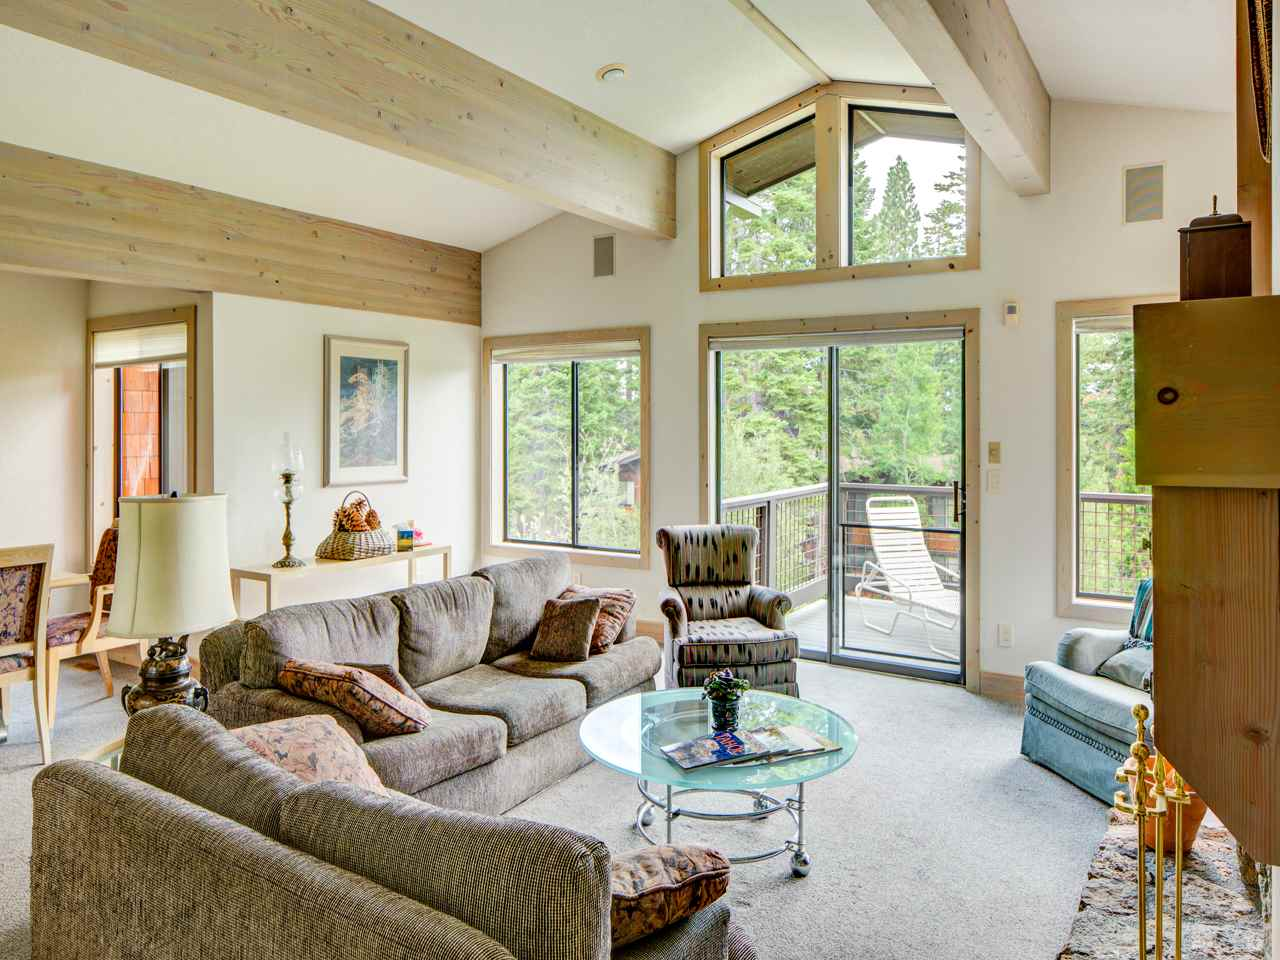 Additional photo for property listing at 1877 North Lake Boulevard 1877 North Lake Boulevard Tahoe City, California 96145 United States